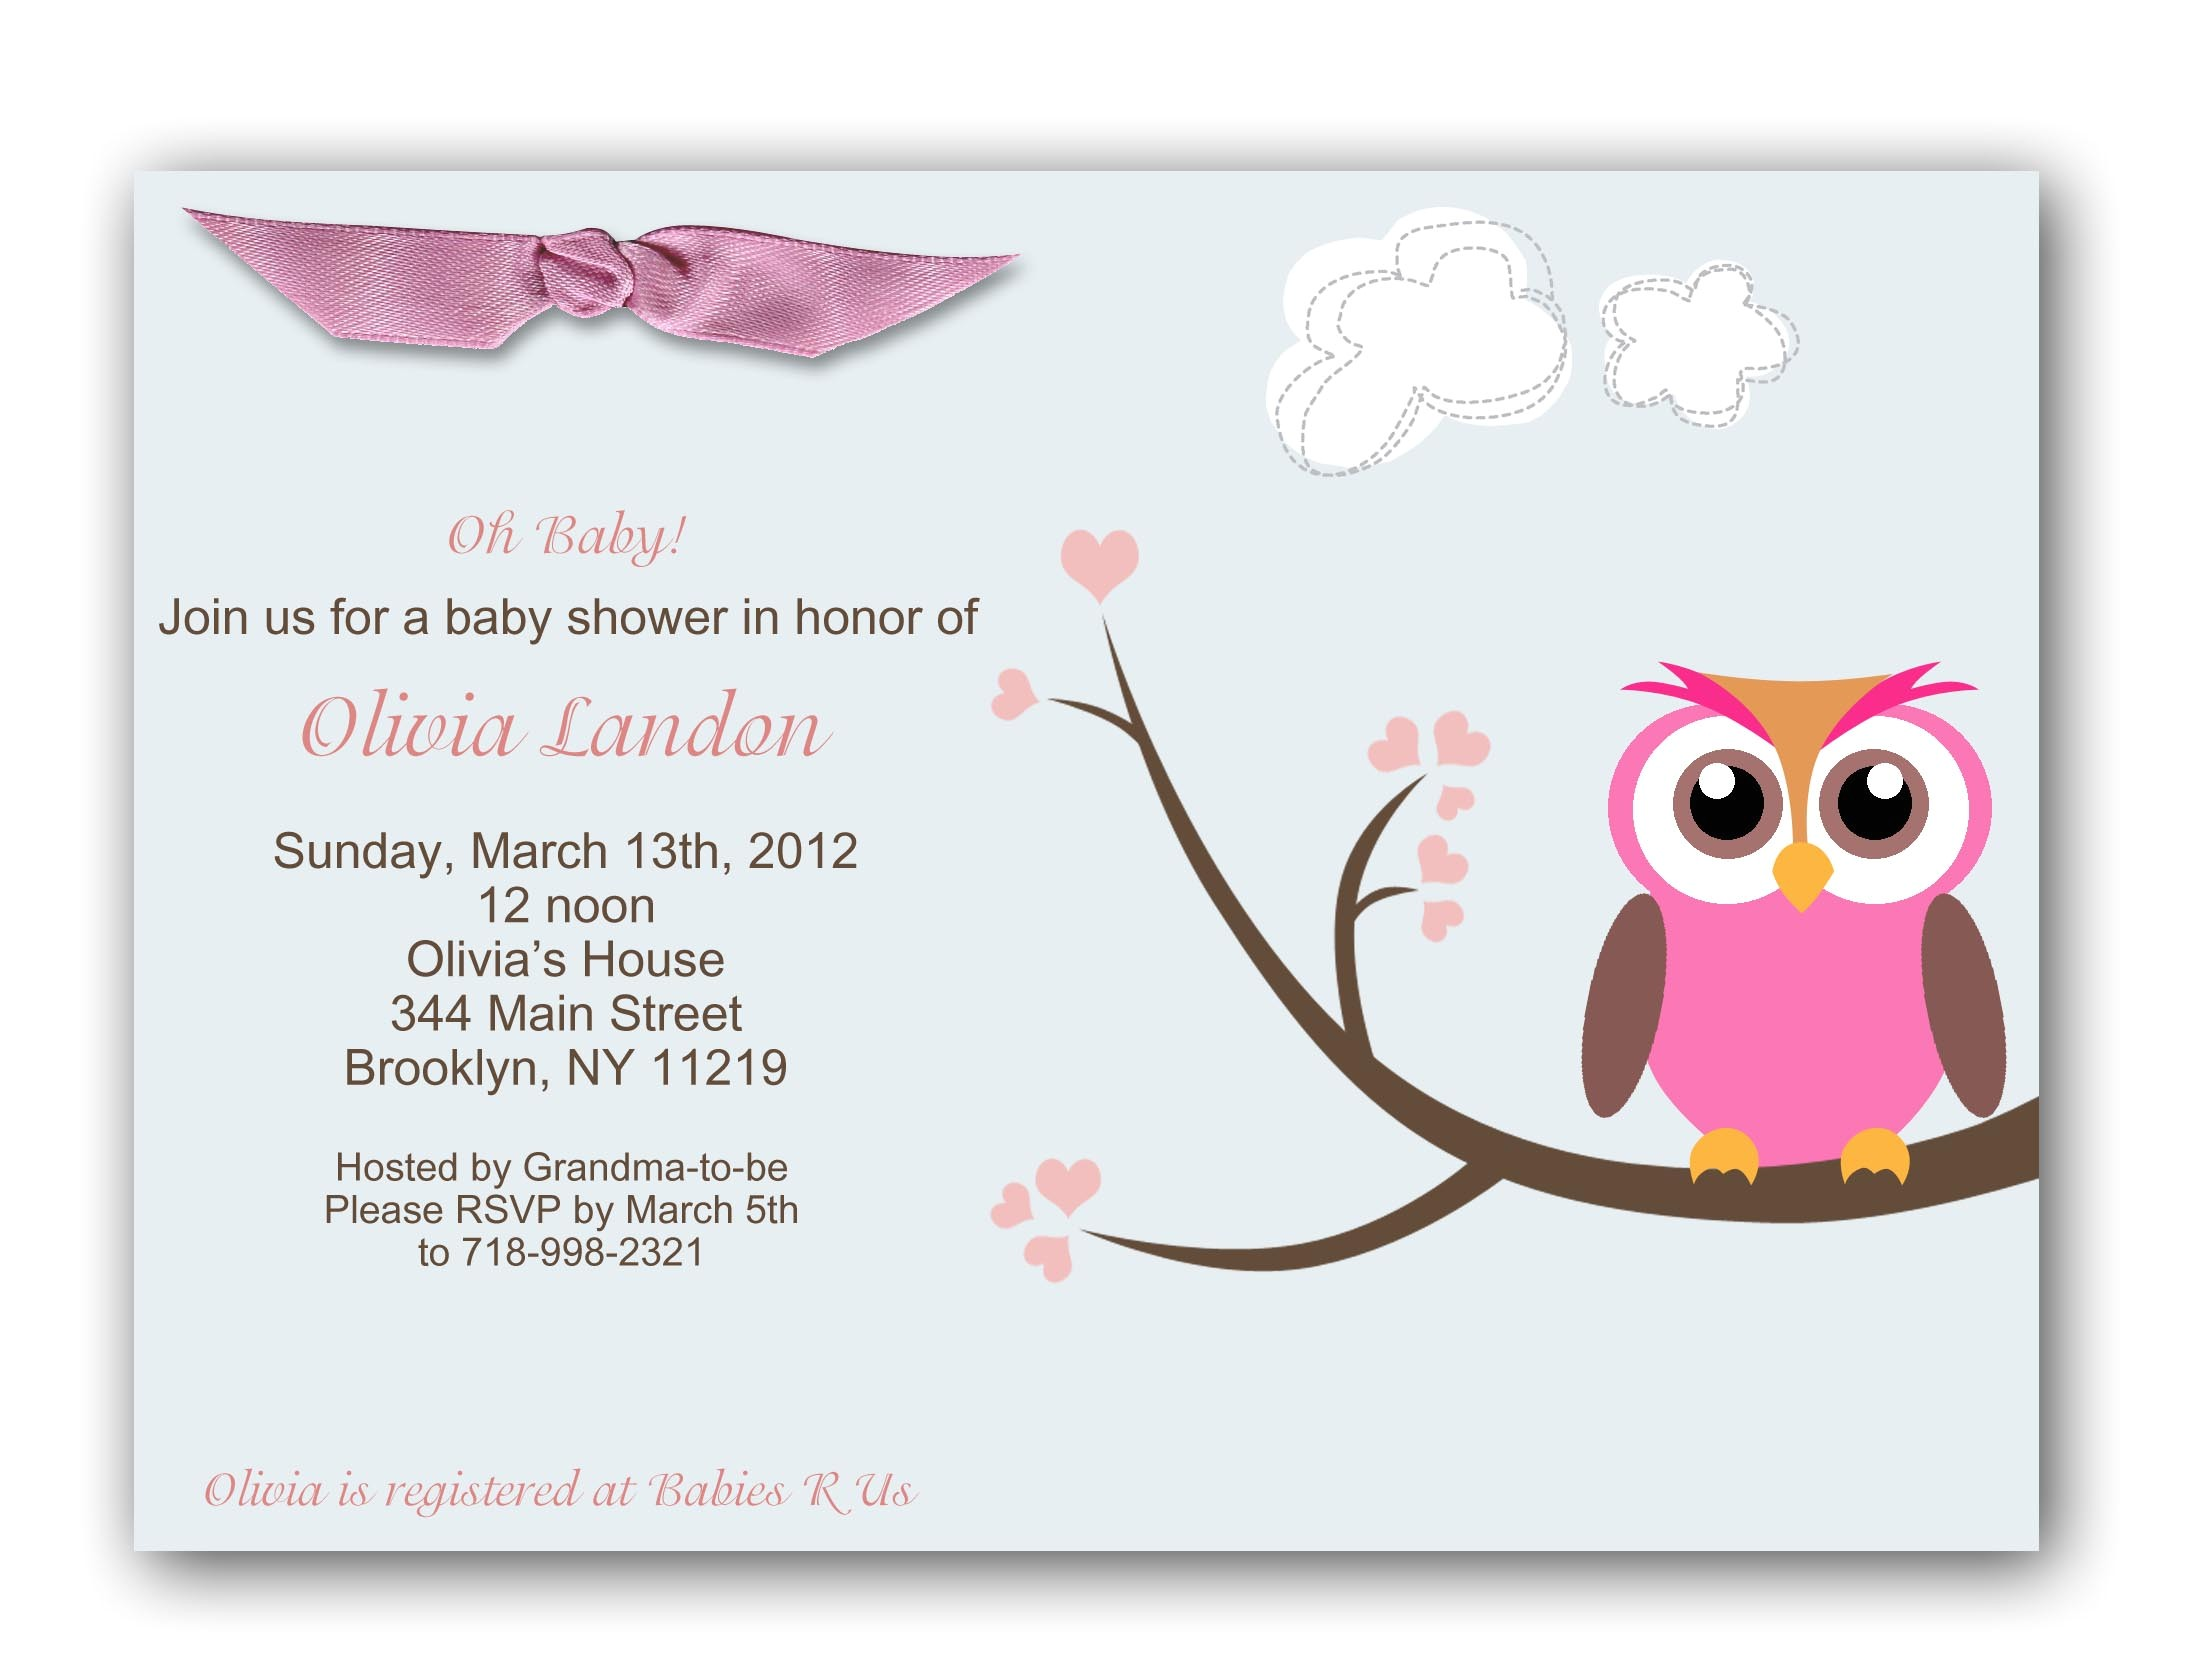 Baby Shower Images for Invitations Baby Shower Invitations for Girls Best Baby Decoration